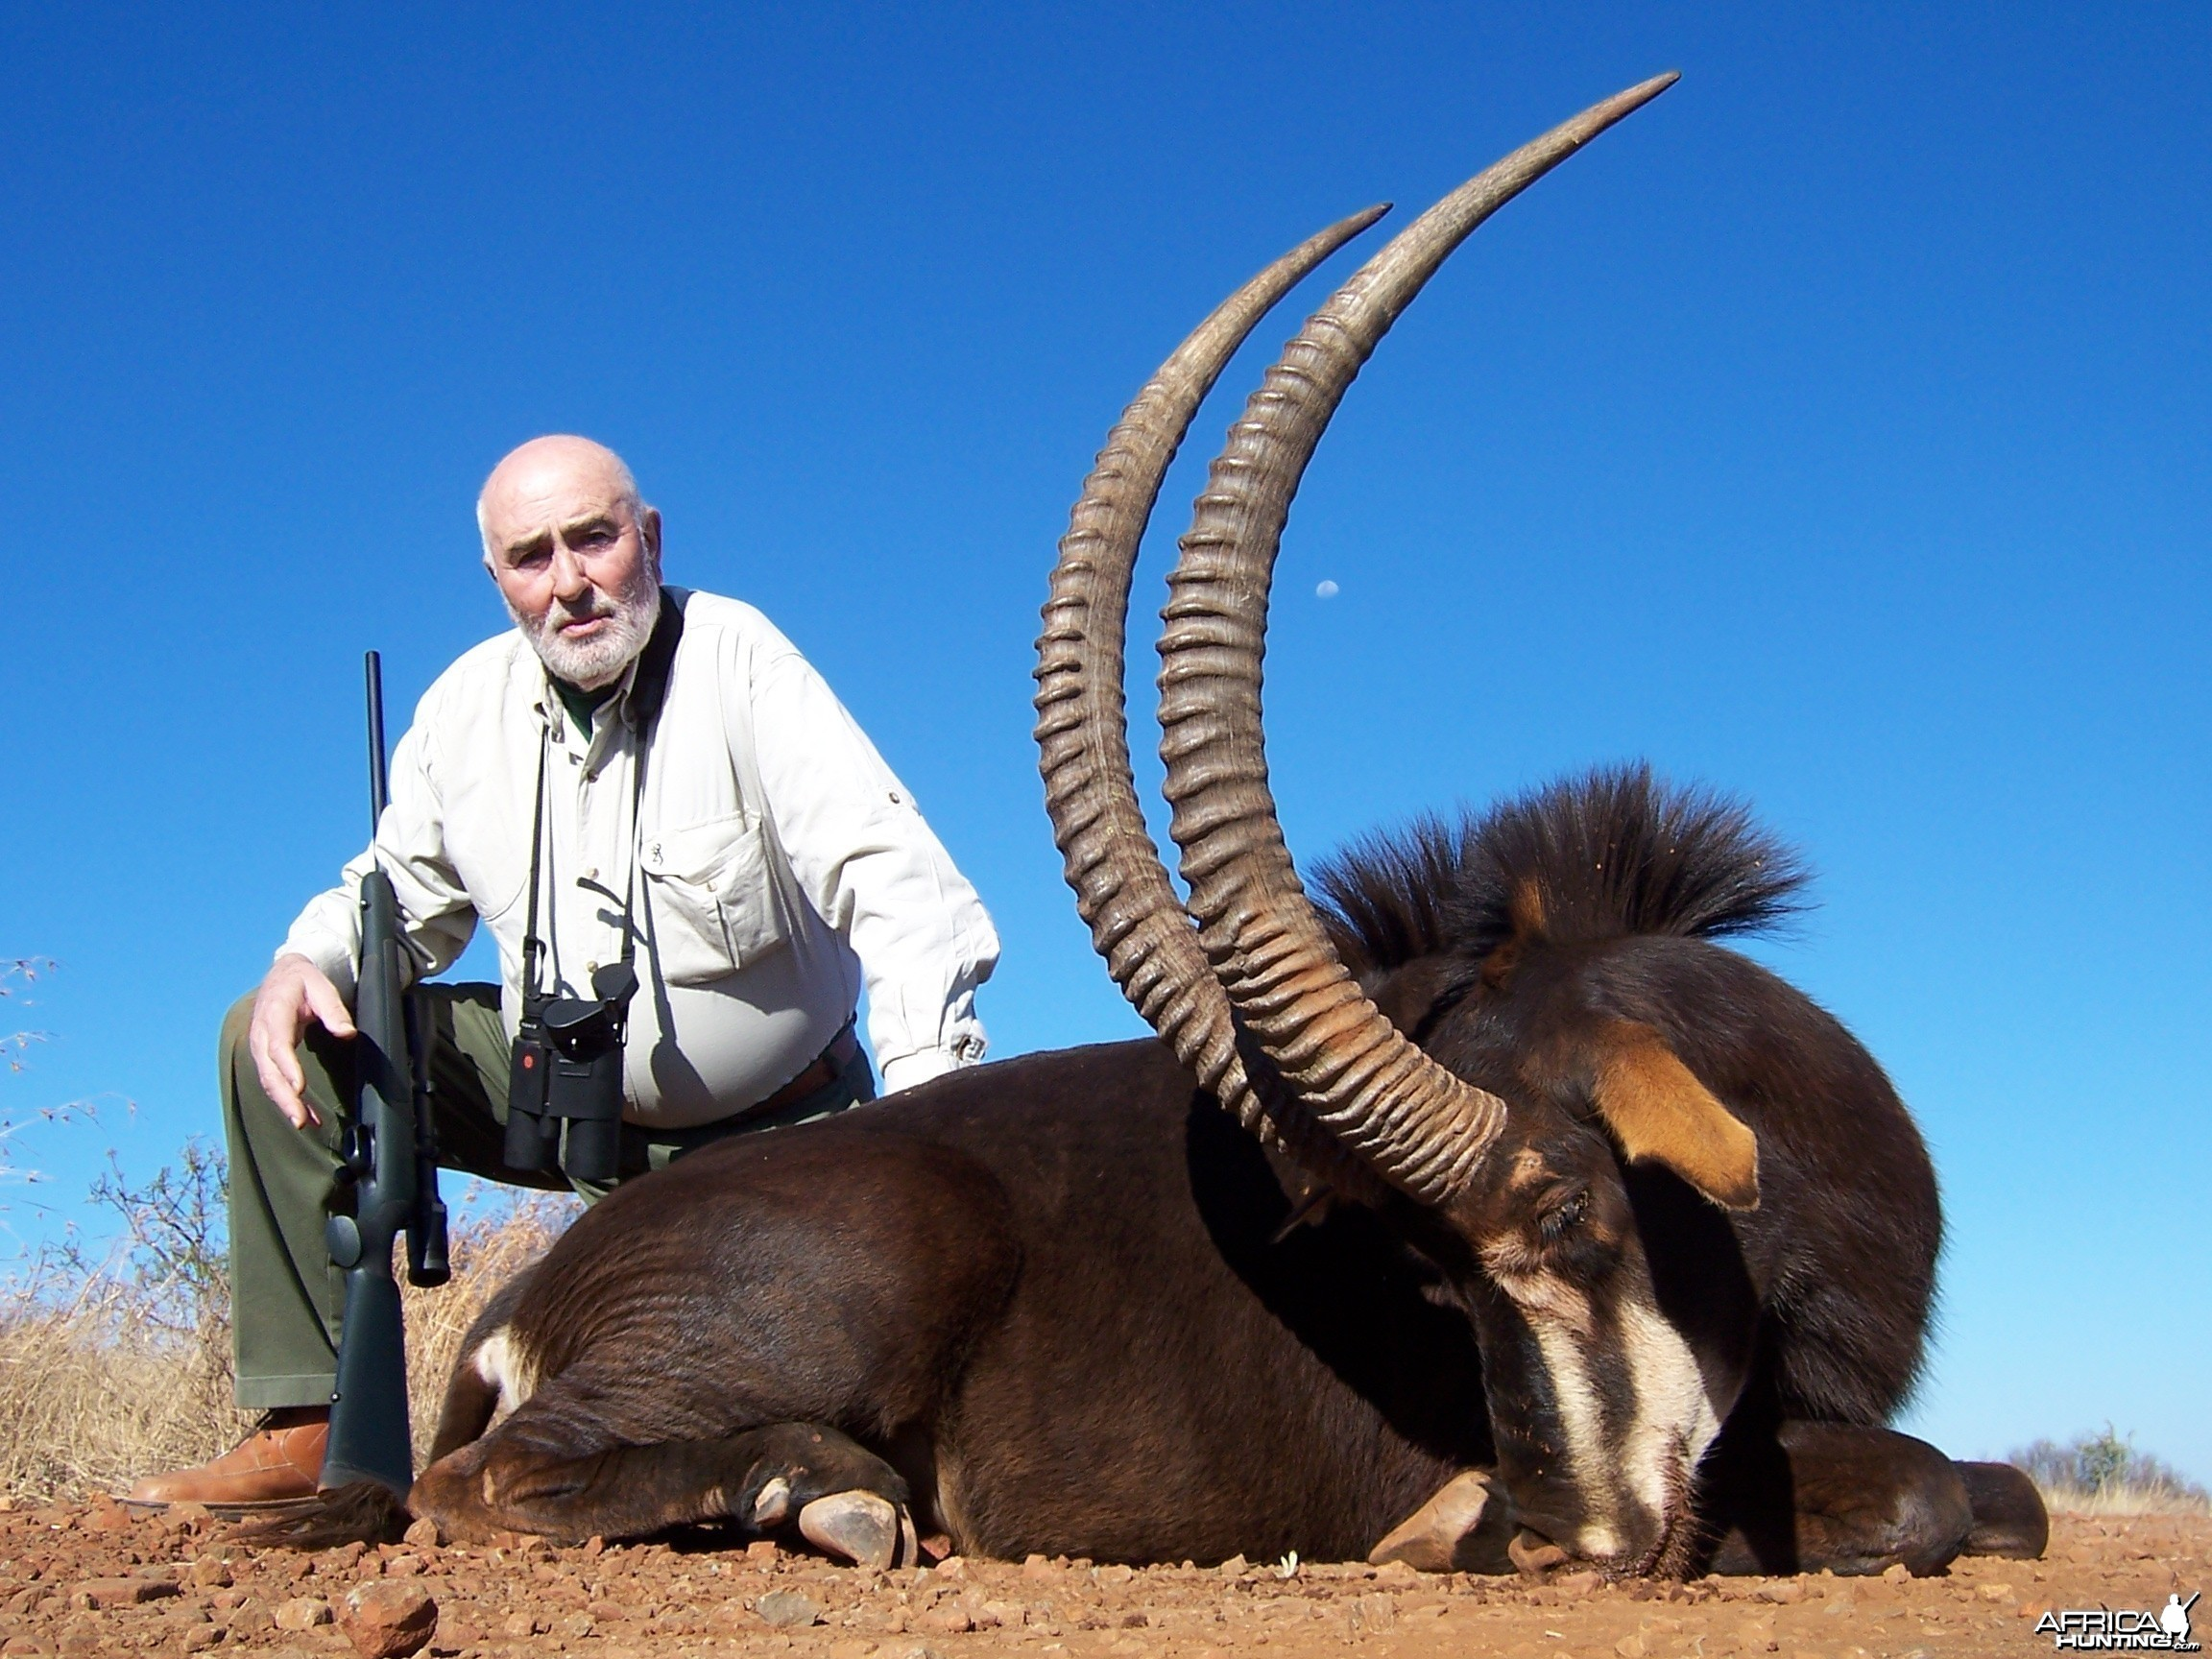 Hunting Sable with Wintershoek Johnny Vivier Safaris in SA